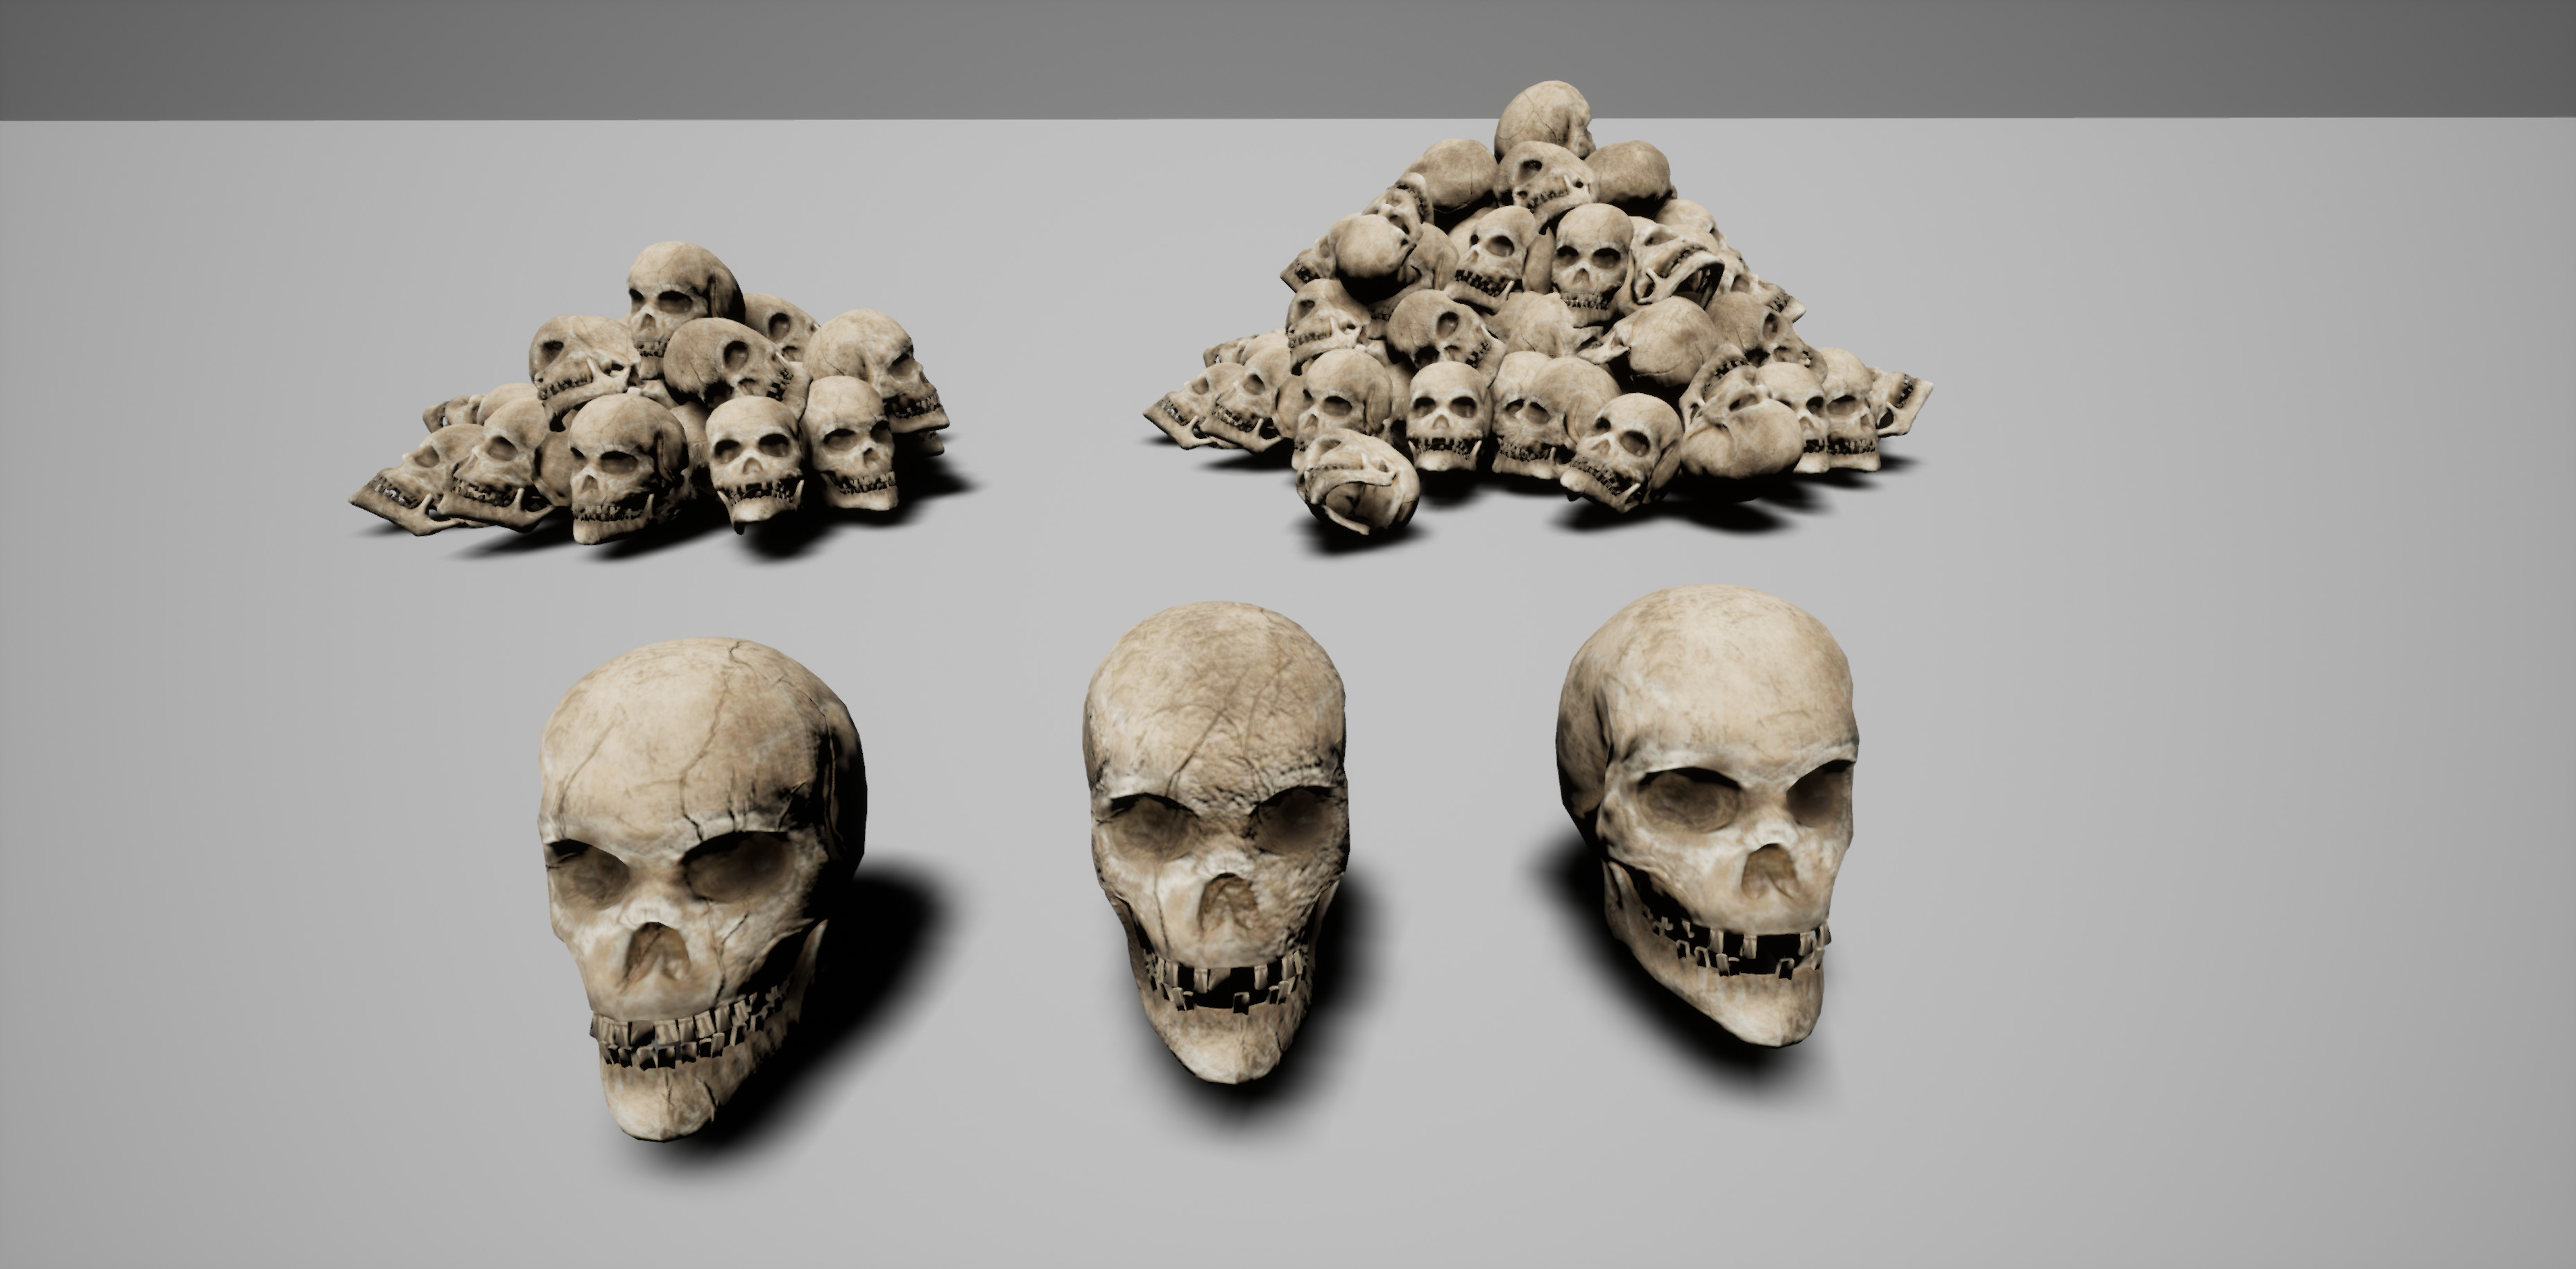 Three different versions of skulls - and two variations of piles I created for the scene. Modeled in Zbrush and textured in Substance Painter.